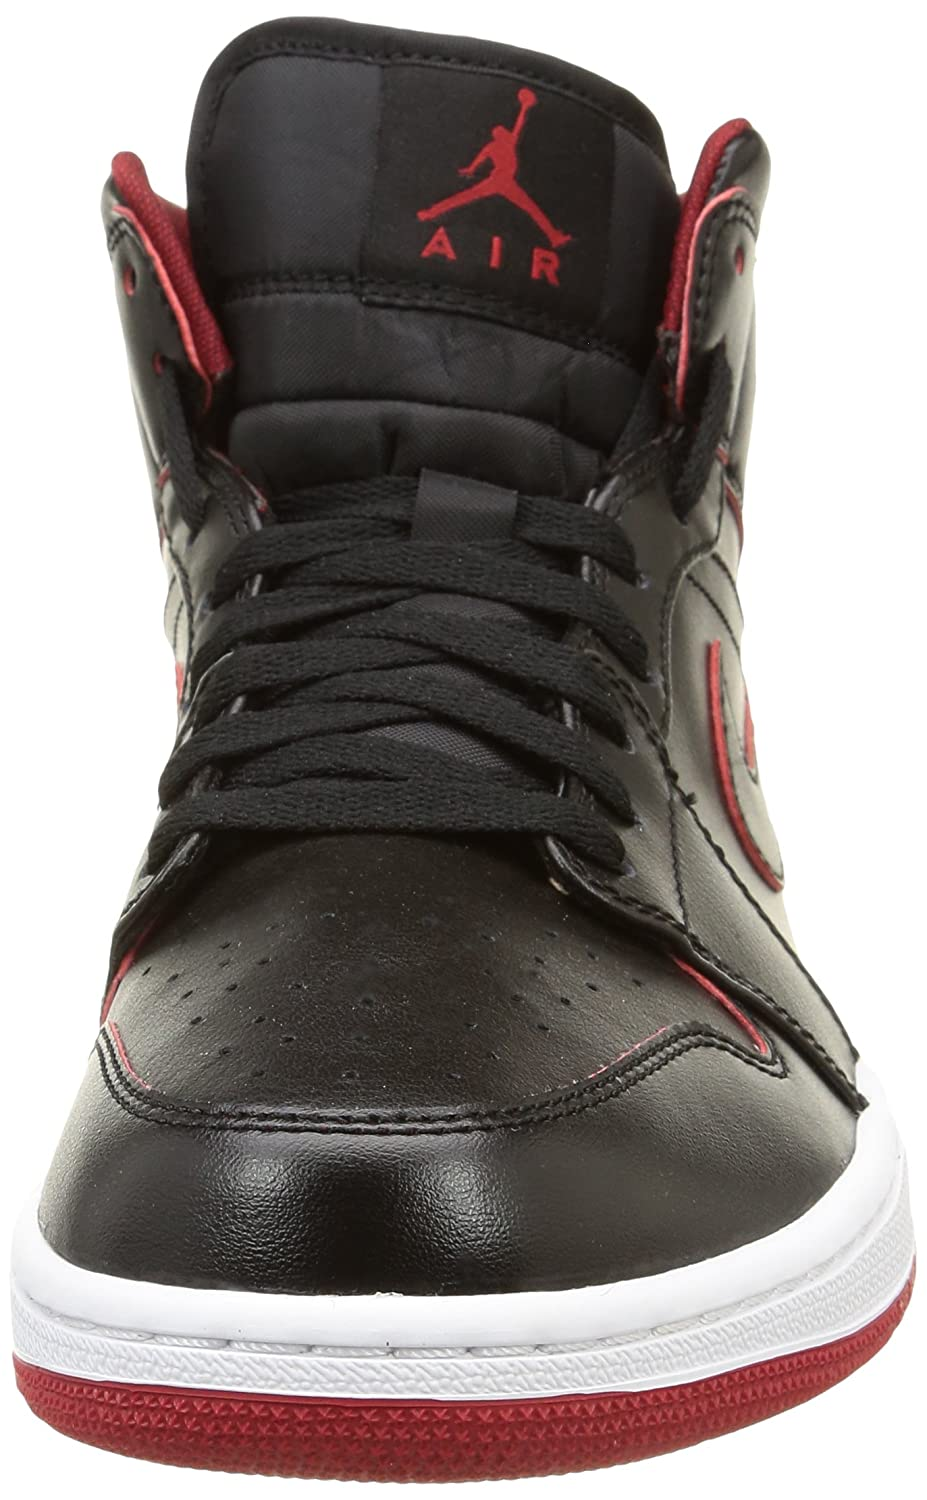 Nike Jordan Men's Air Jordan 1 Mid Basketball Shoe: Amazon.ca: Shoes &  Handbags